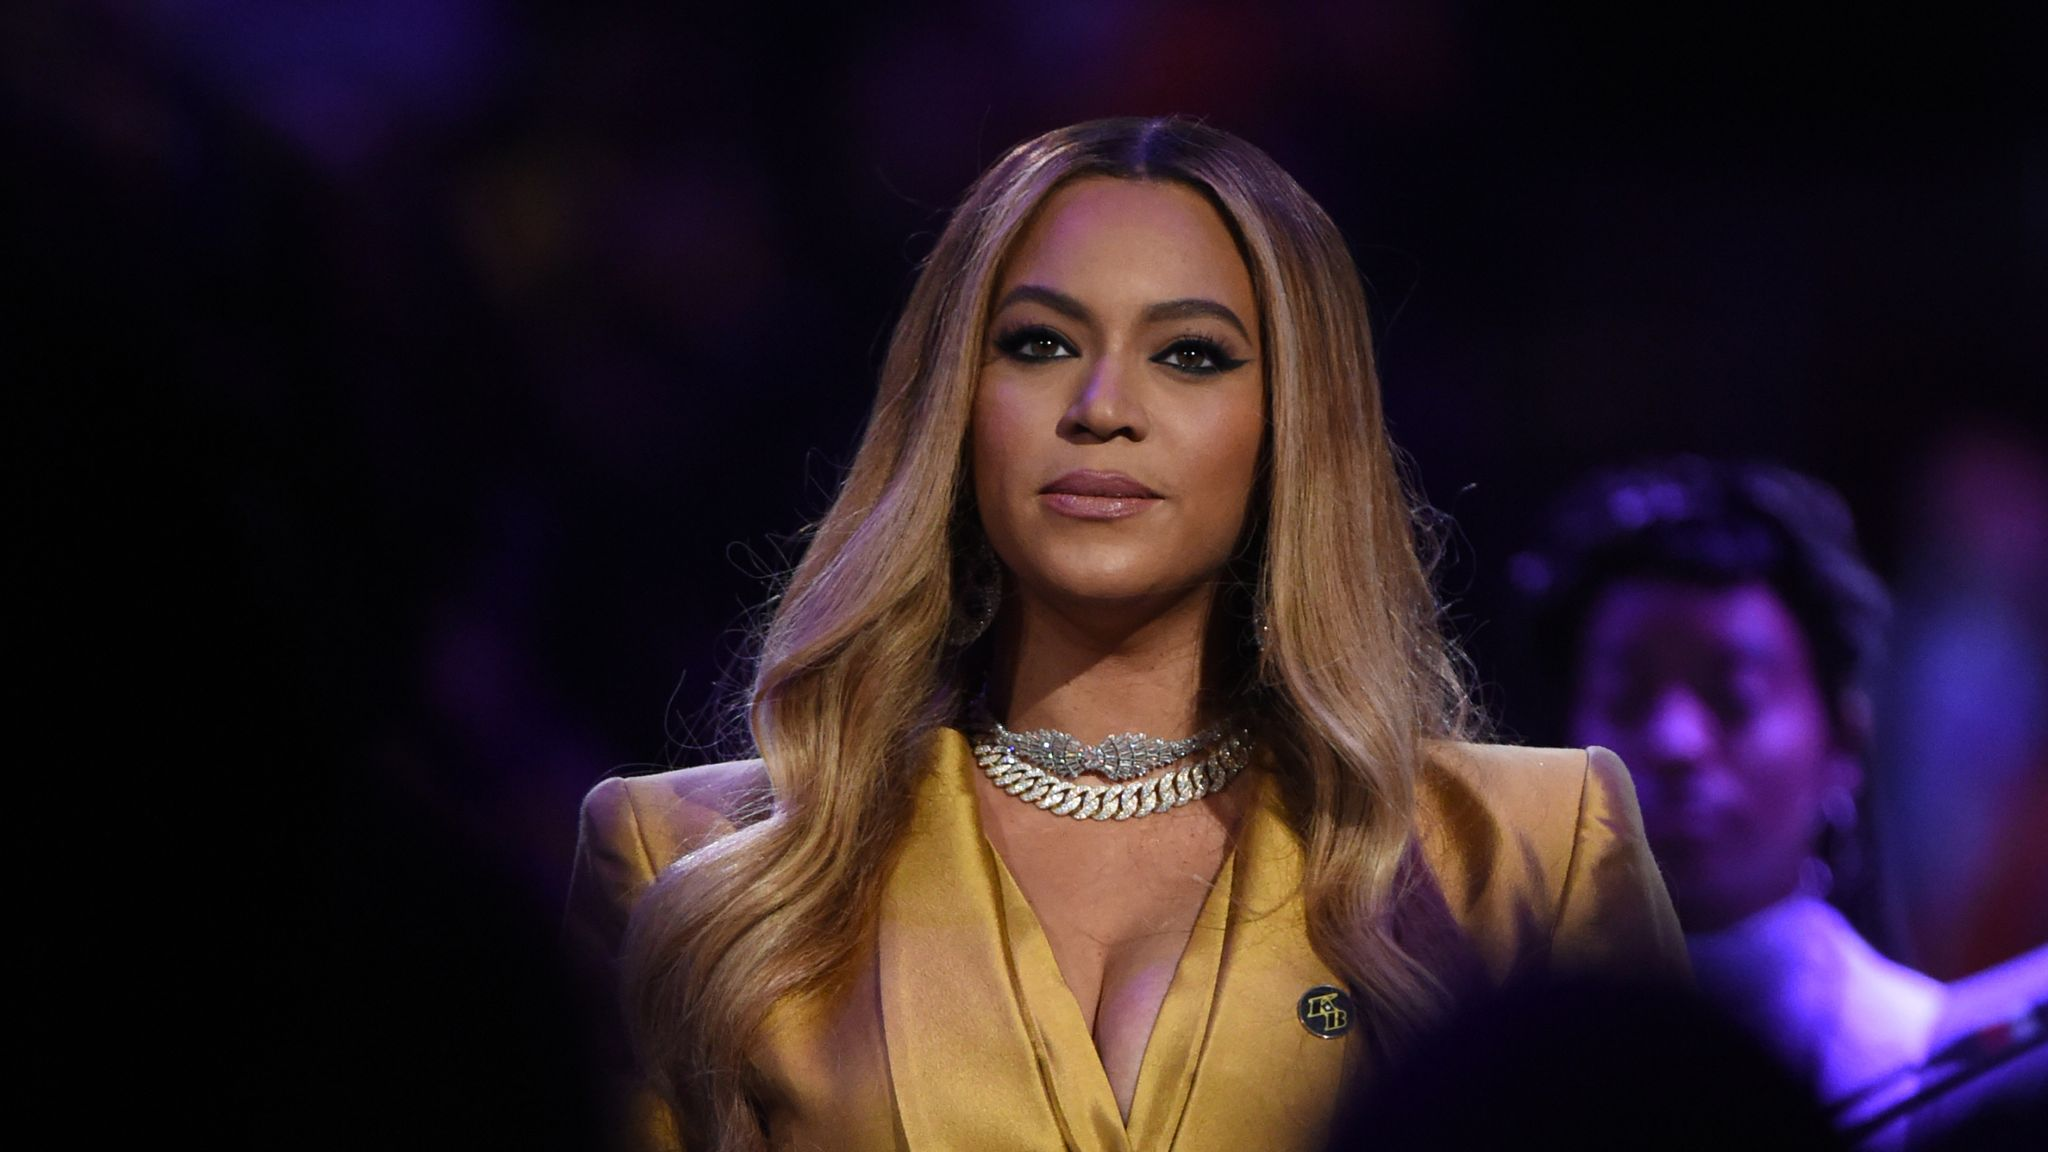 Beyonce Teams Up With A Prestigious Company To Gift HBCU Student A 2-Year Digital Membership